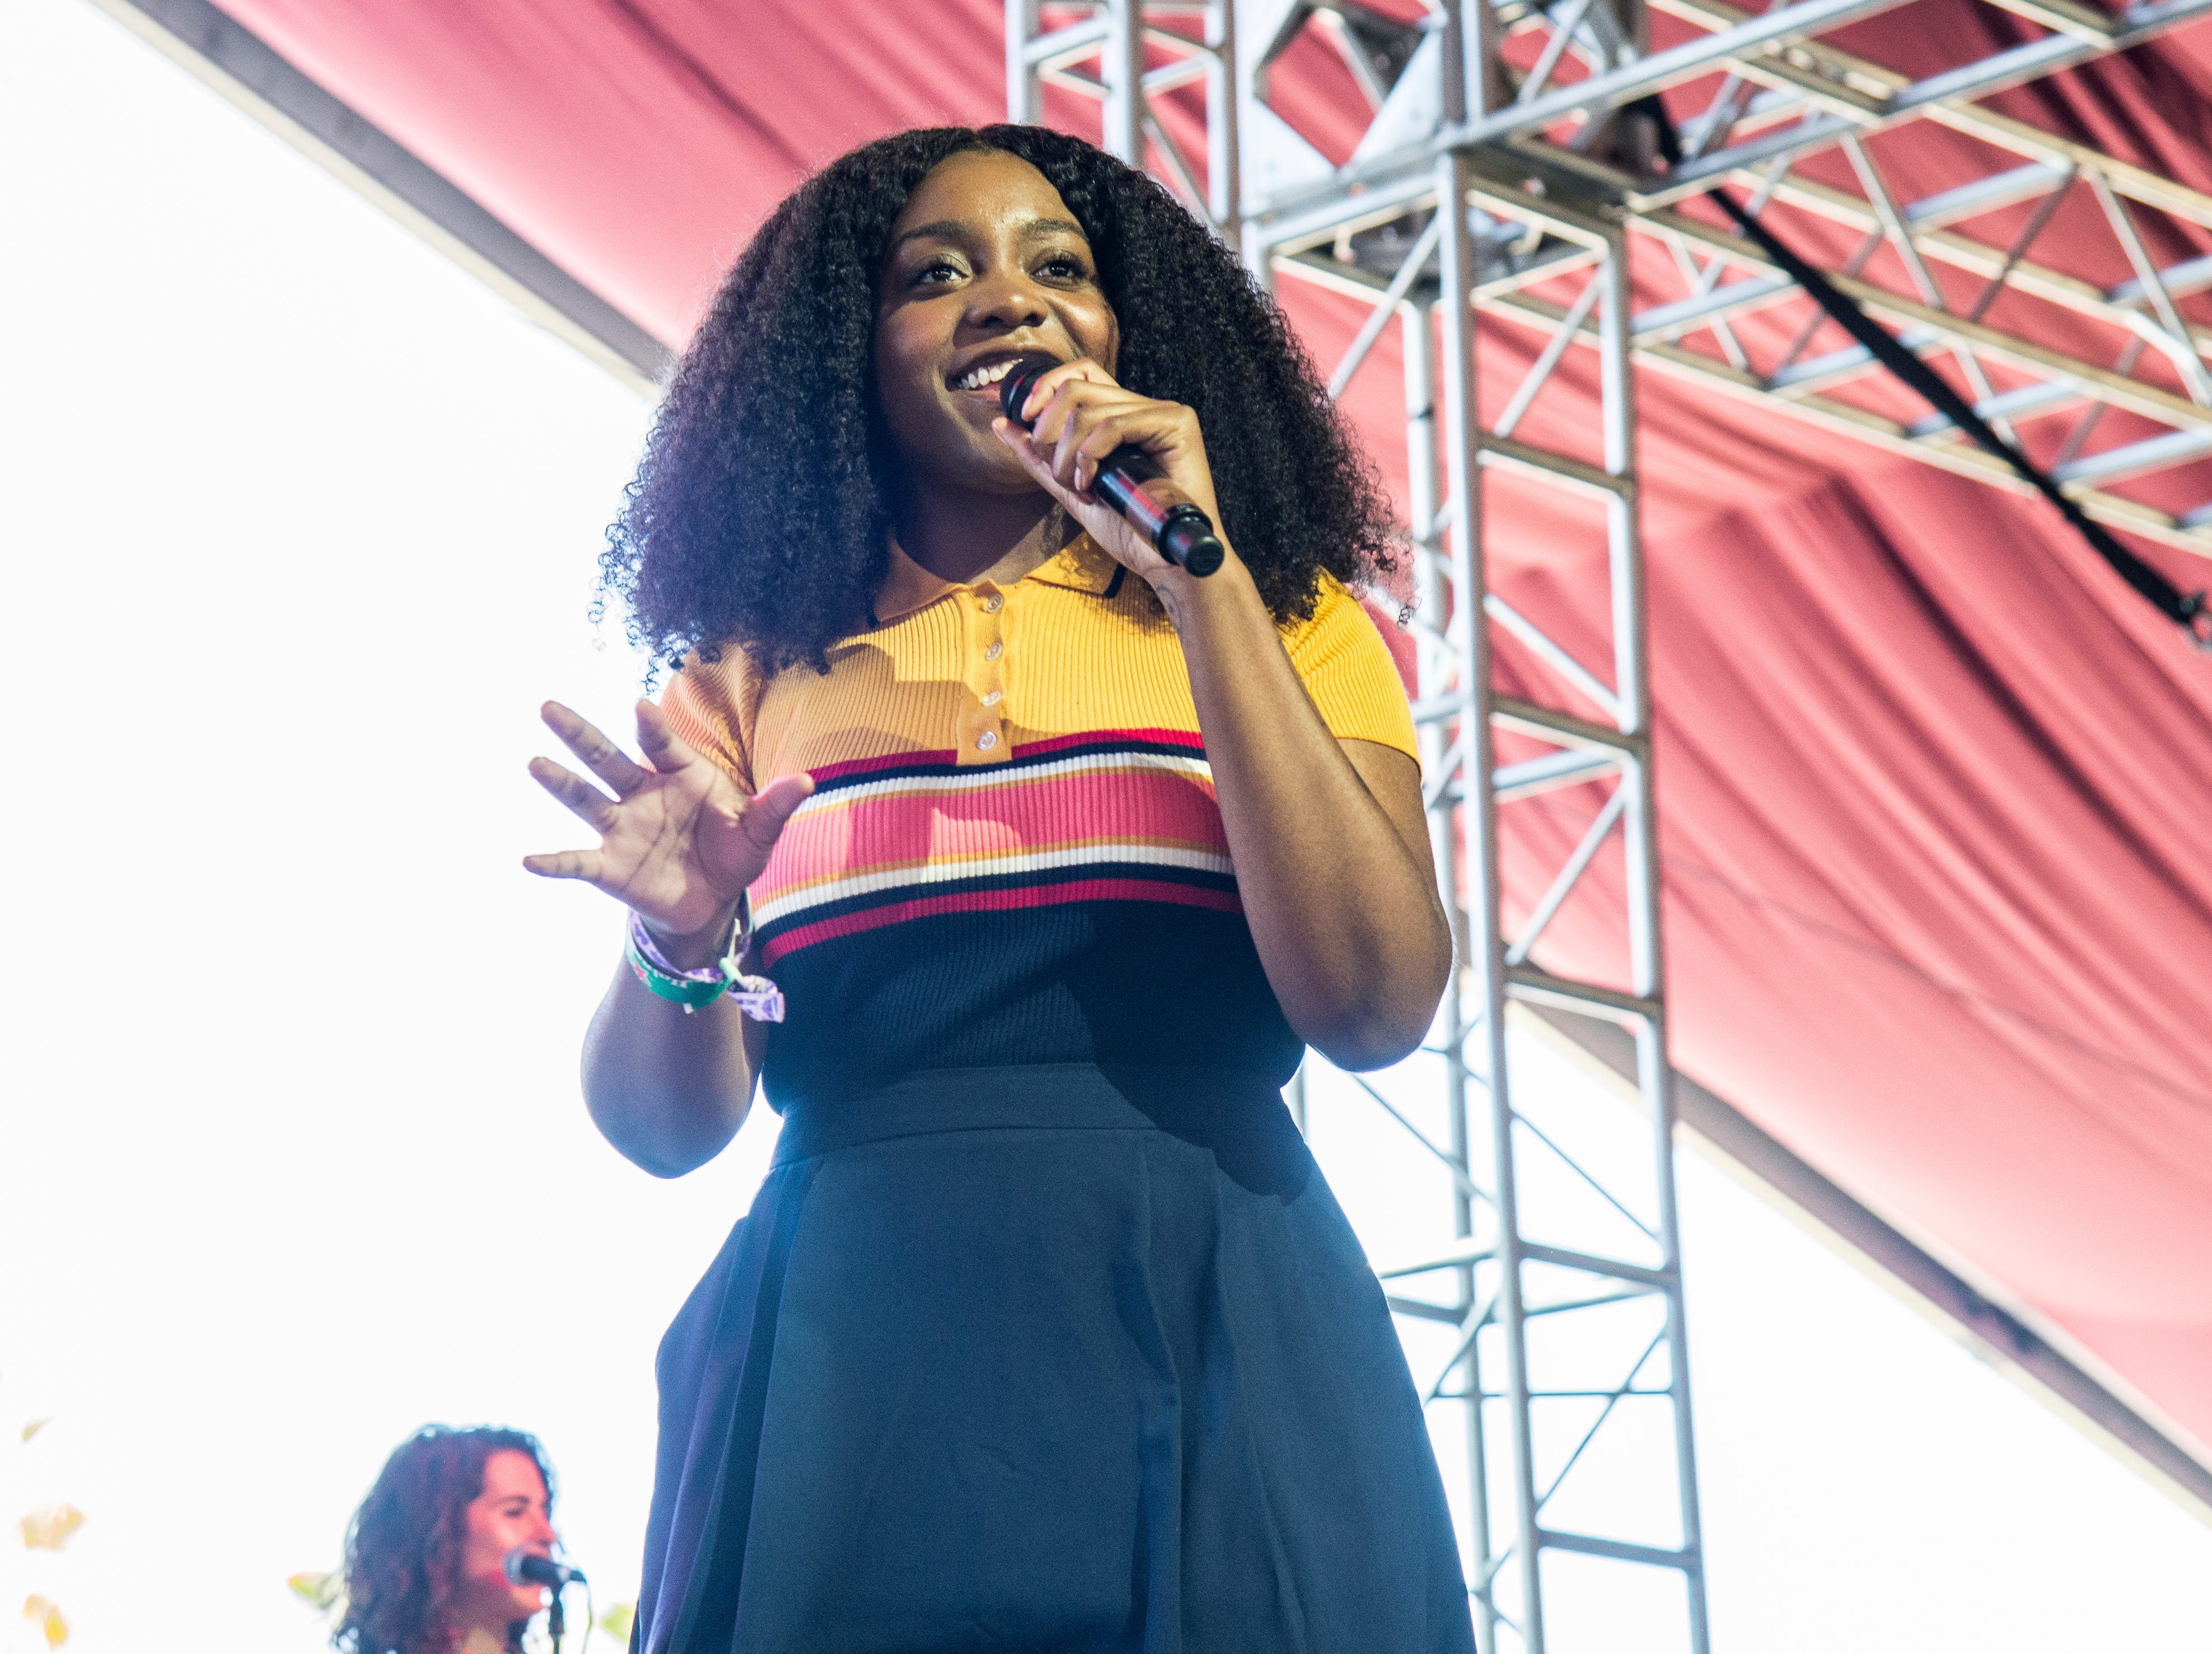 Noname performs at the Coachella Music & Arts Festival at the Empire Polo Club on Sunday, April 22, 2018, in Indio, Calif. (Photo by Amy Harris/Invision/AP)